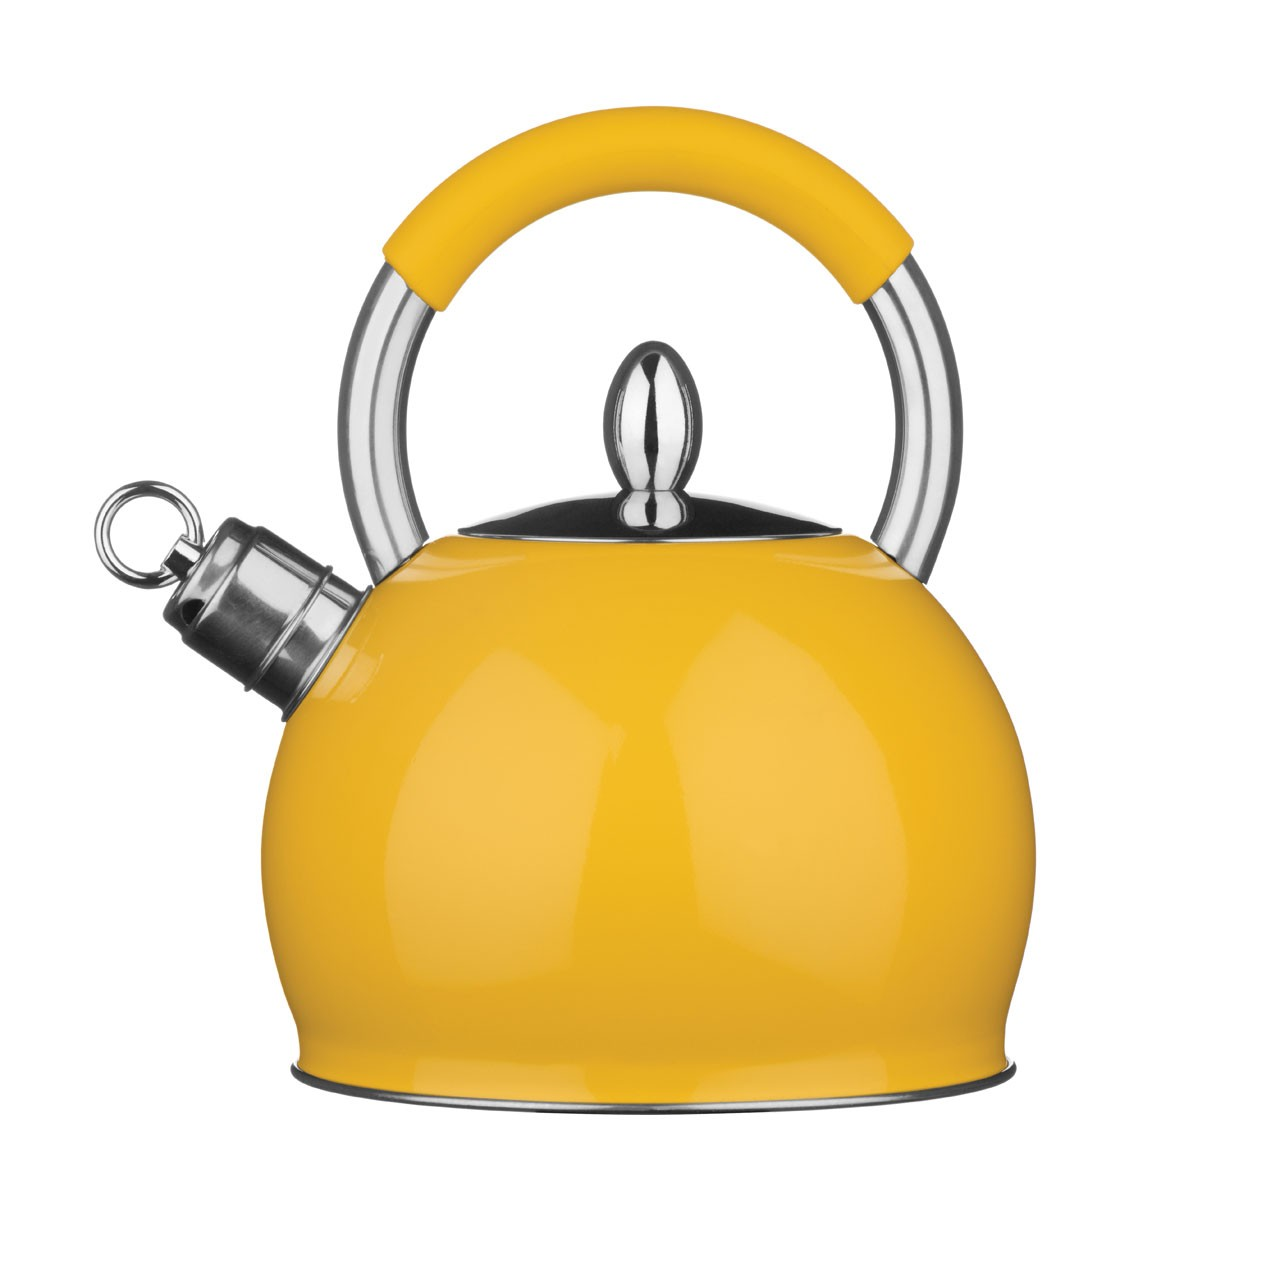 Whistling Kettle Stainless Steel 3 Ltr New Look Available in Dif